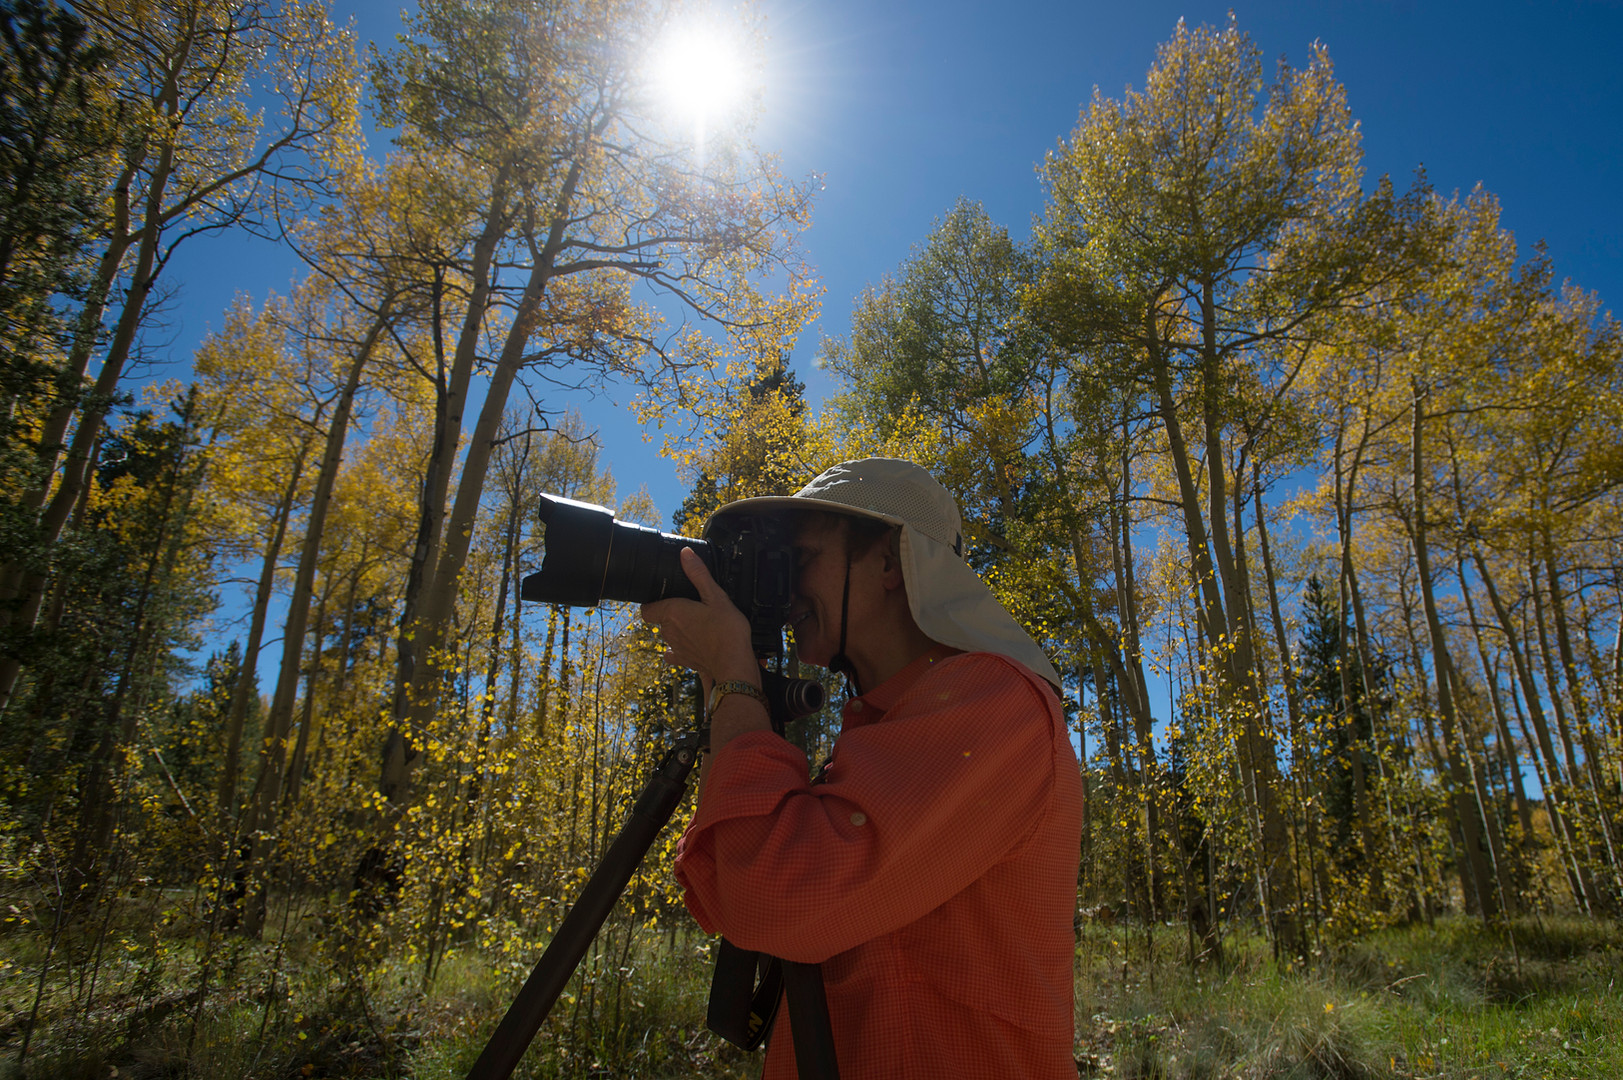 Marie Bush of Lafayette, Colorado snaps a photo under the cover of aspen trees showing their fall colors near Kenosha Pass on Thursday, September 21, 2017. The area, about two and a half hours from Fort Collins, is known to have one of the largest groves of aspen trees in the state.